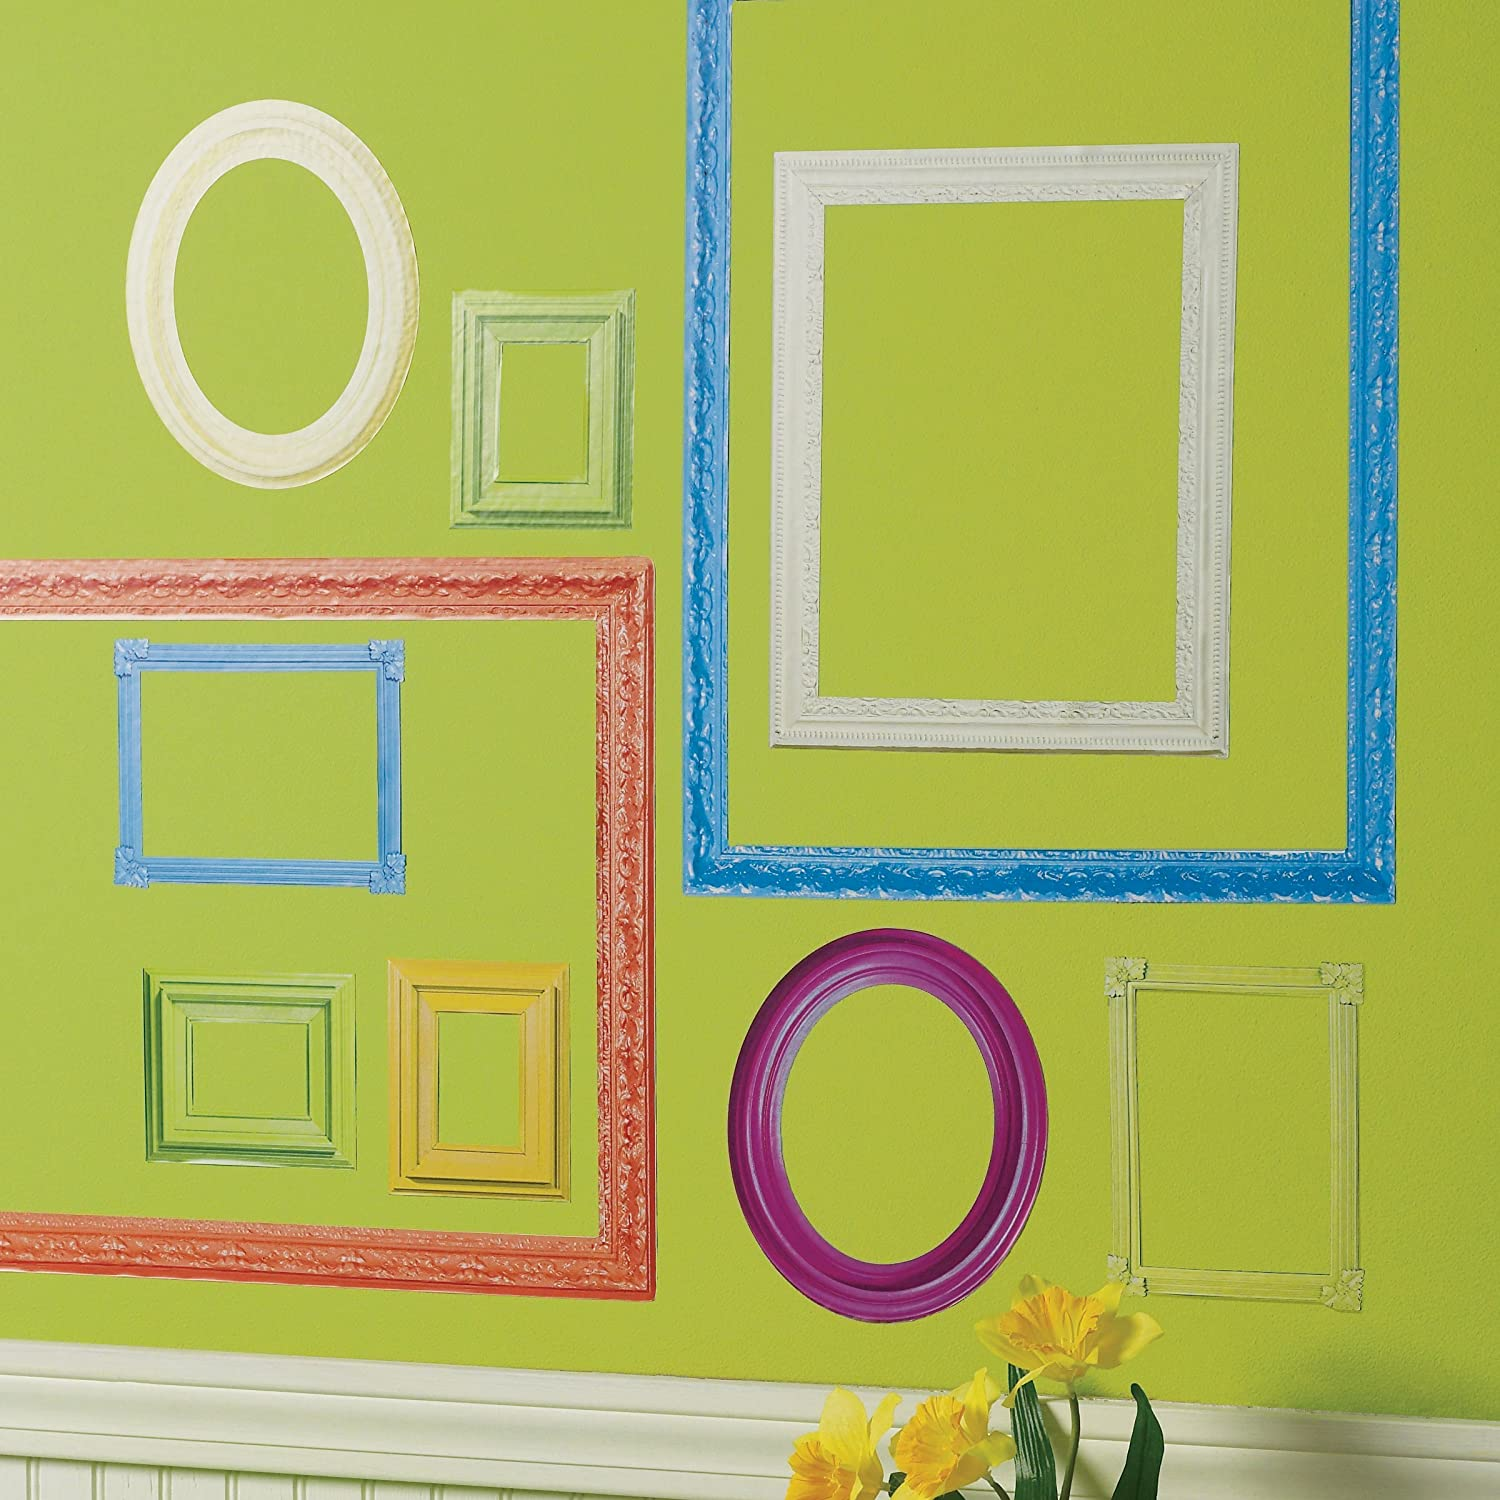 Wallies Peel & Stick Vinyl Wall Decals, Colorful Frames Wall ...